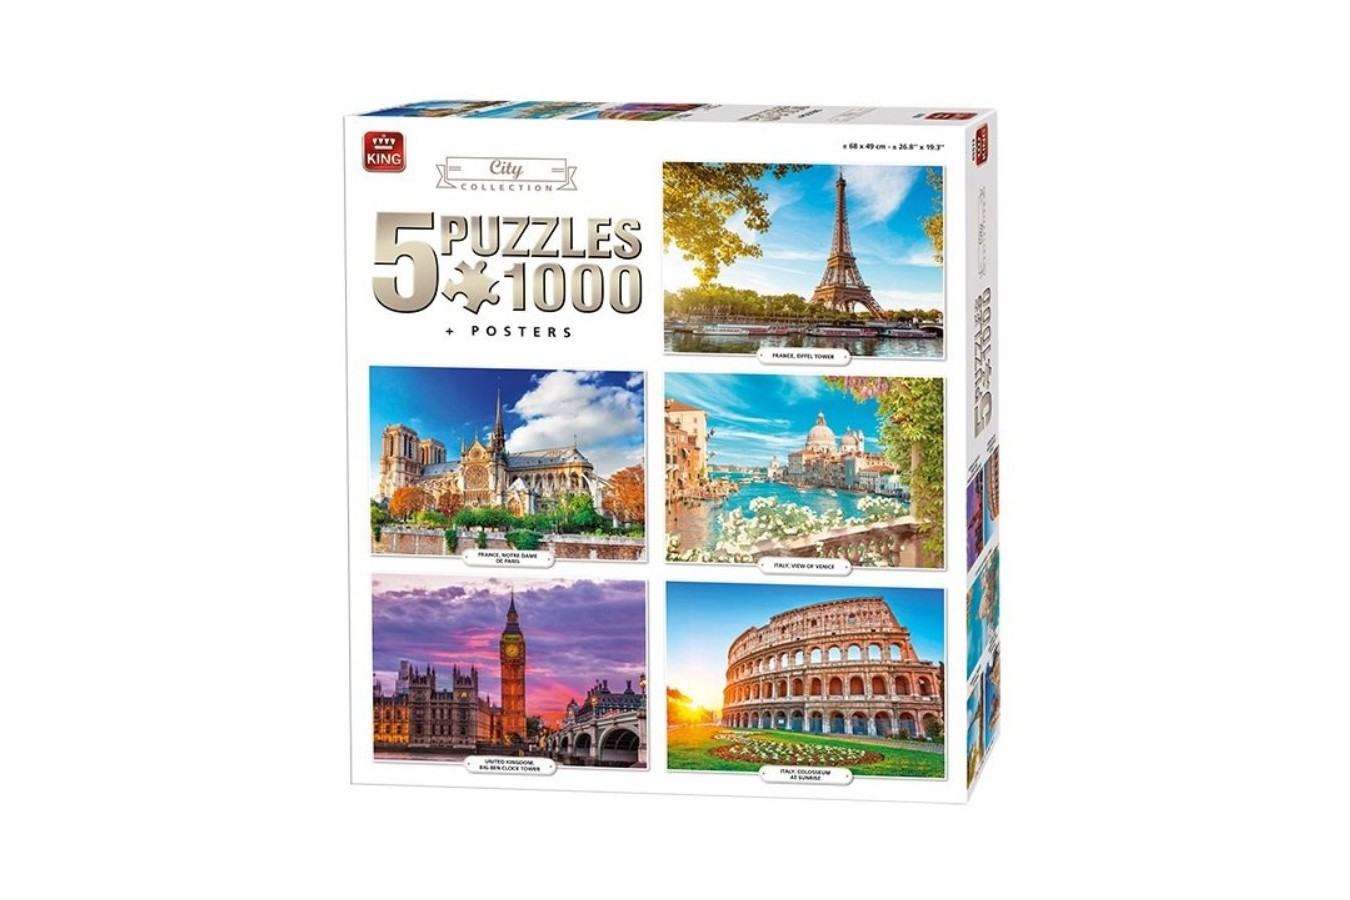 Puzzle King International - 5 Puzzles - City Collection, 5x1.000 piese (King-Puzzle-85513) imagine